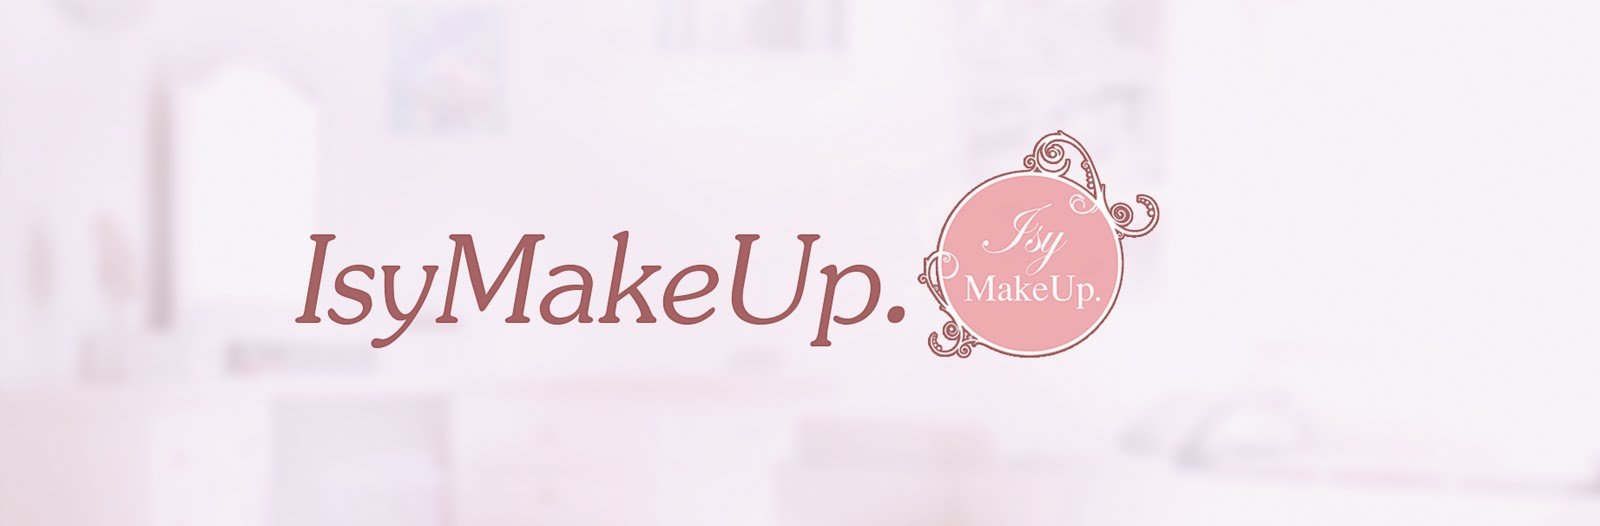 IsyMakeUp.